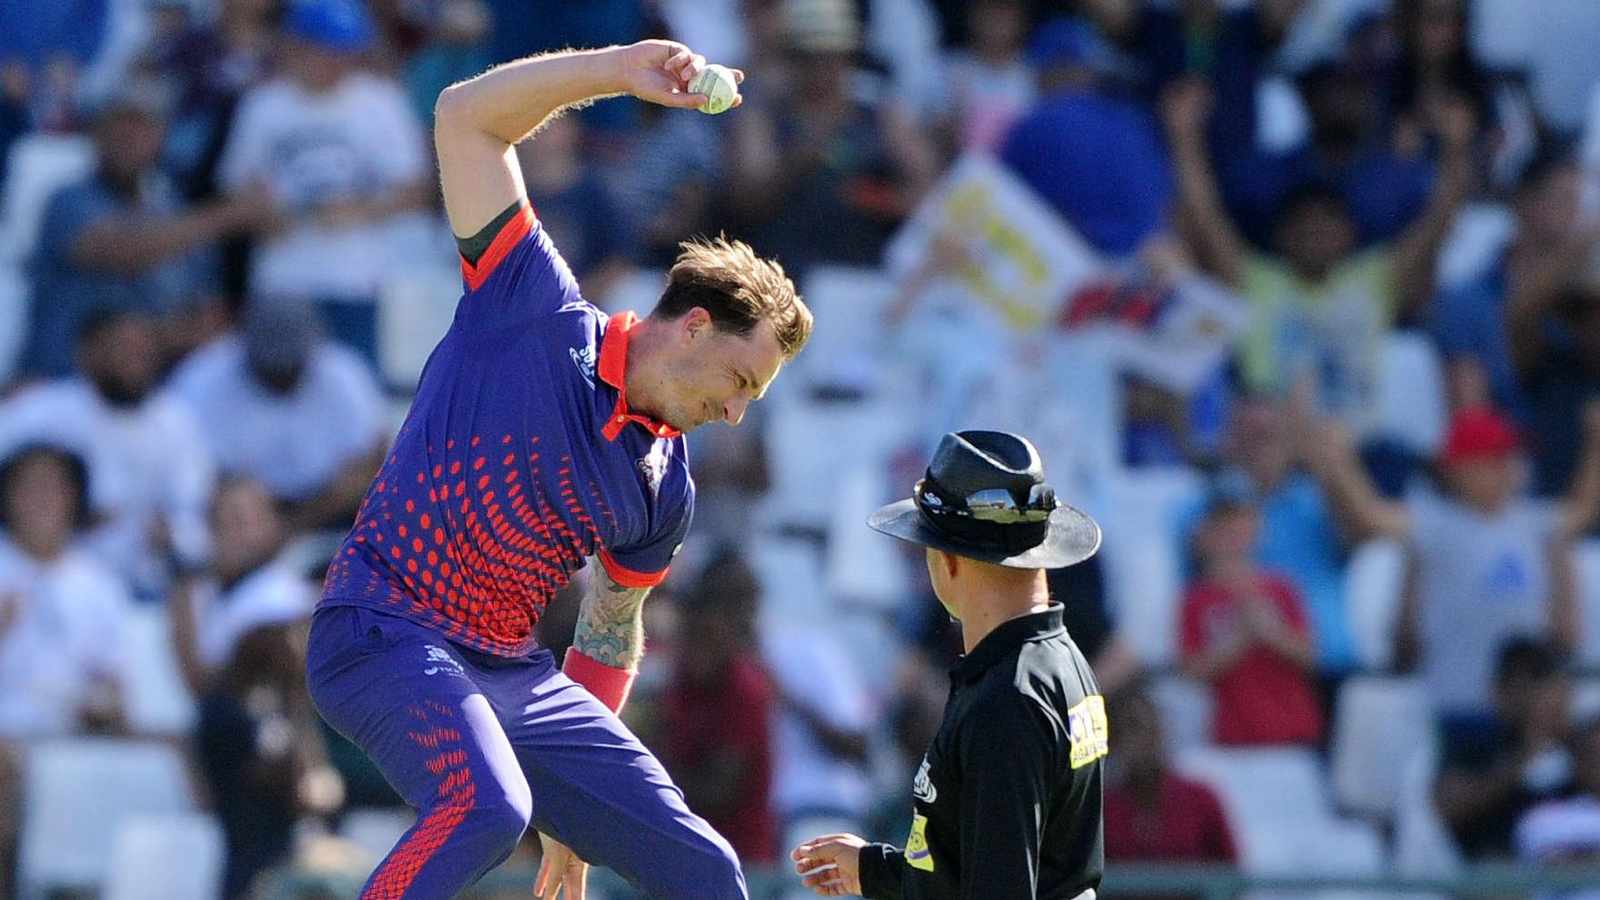 Steyn: 'I enjoy what I do and it shows'